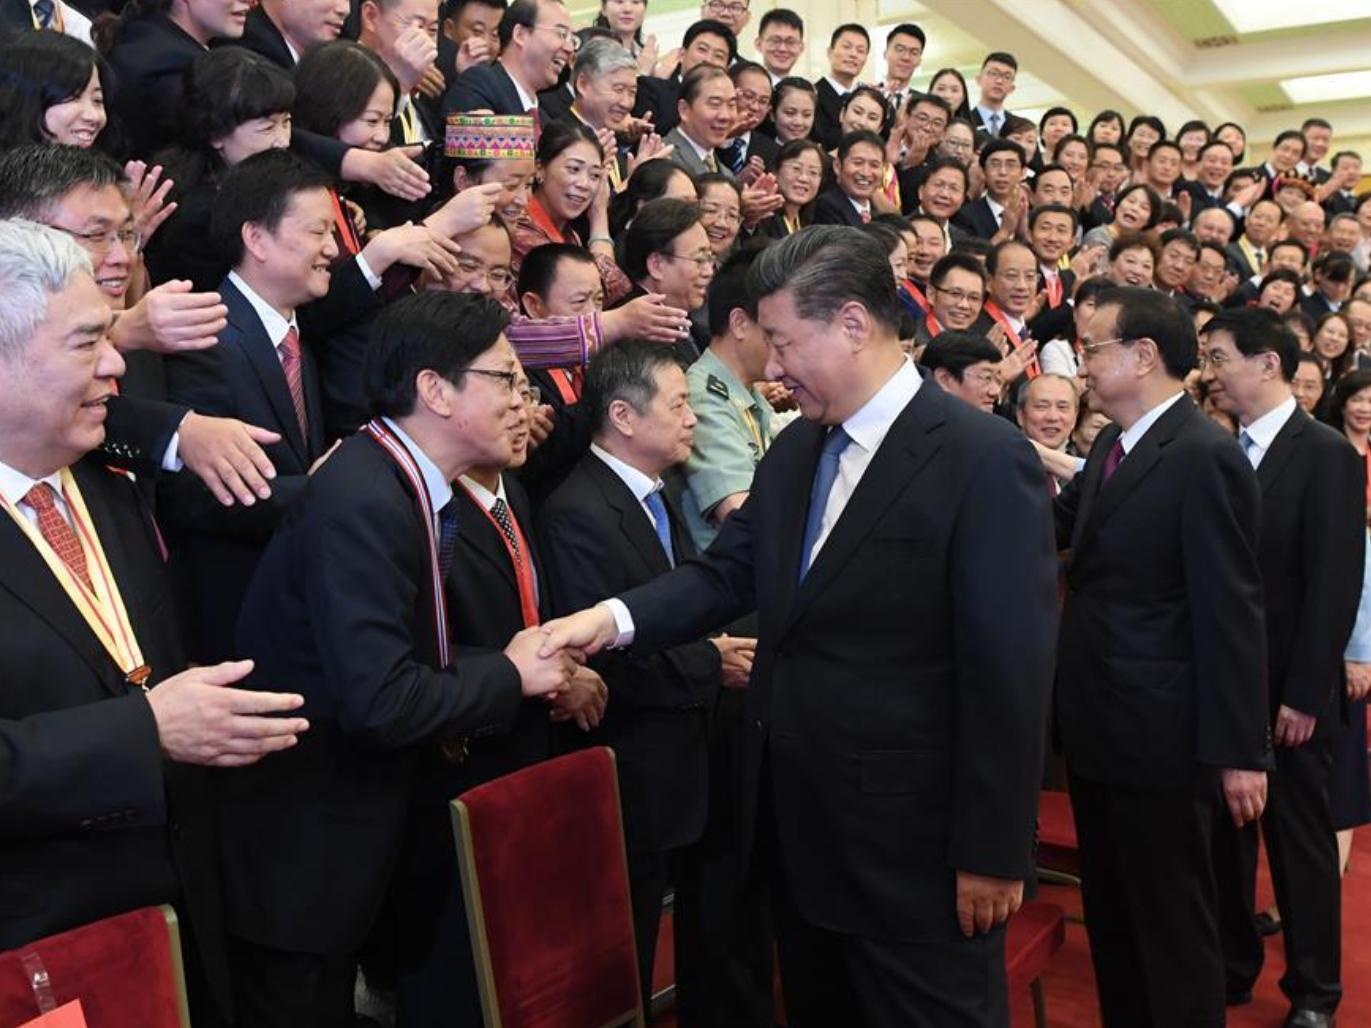 Xi extends Teachers' Day greetings to teachers